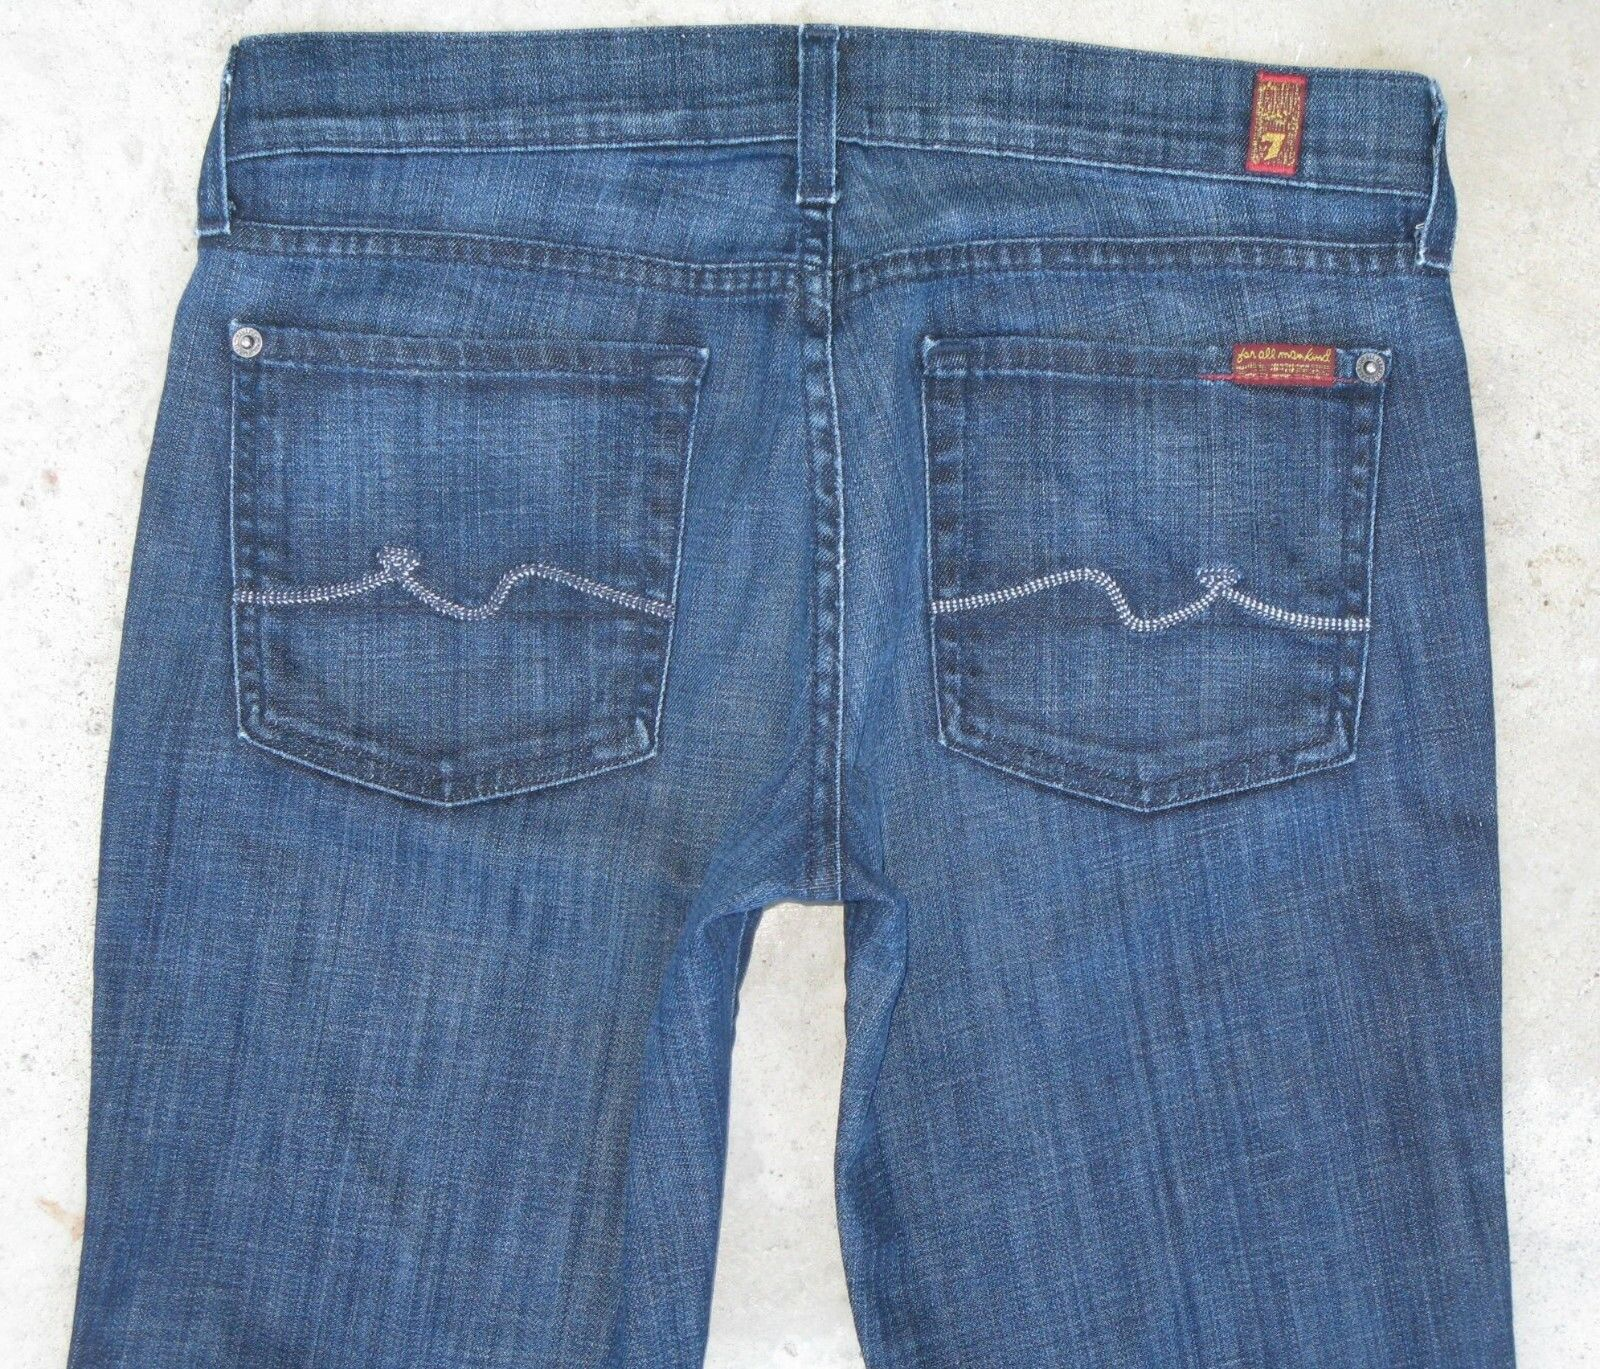 7 for all Mankind Lexie Petite Bootcut Jeans Sz 28 Low Waist Distressed L 29.25